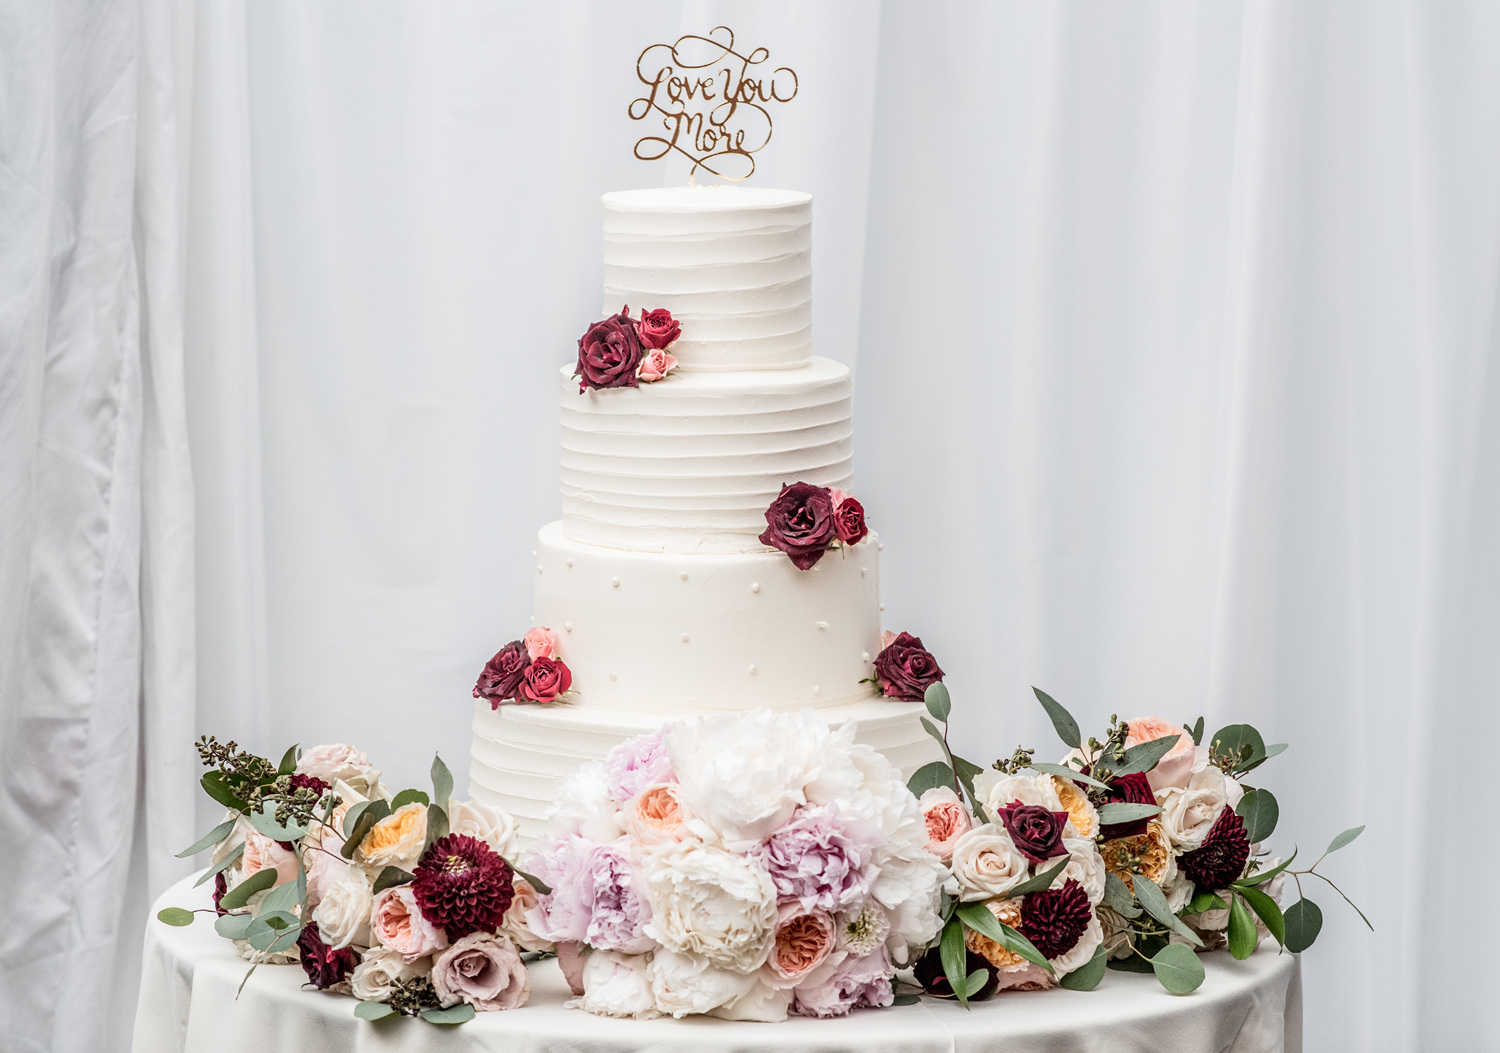 White wedding cake with dark and moody color palette fresh flower decorations